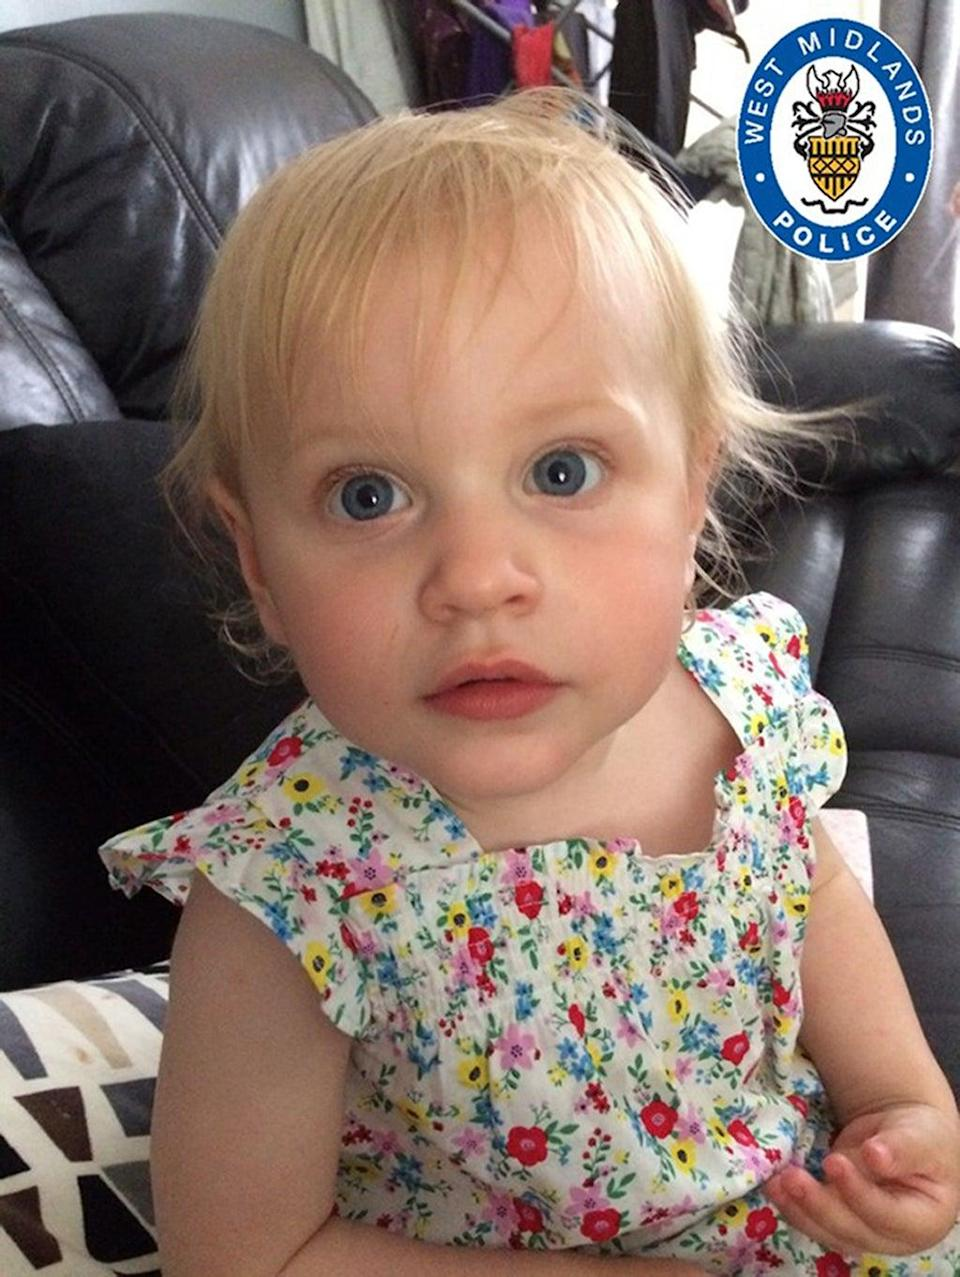 Lilly Hanrahan, 21 months old, died after suffering horrific injuries at the hands of babysitter Sean Sadler in 2017 (PA) (PA Media)